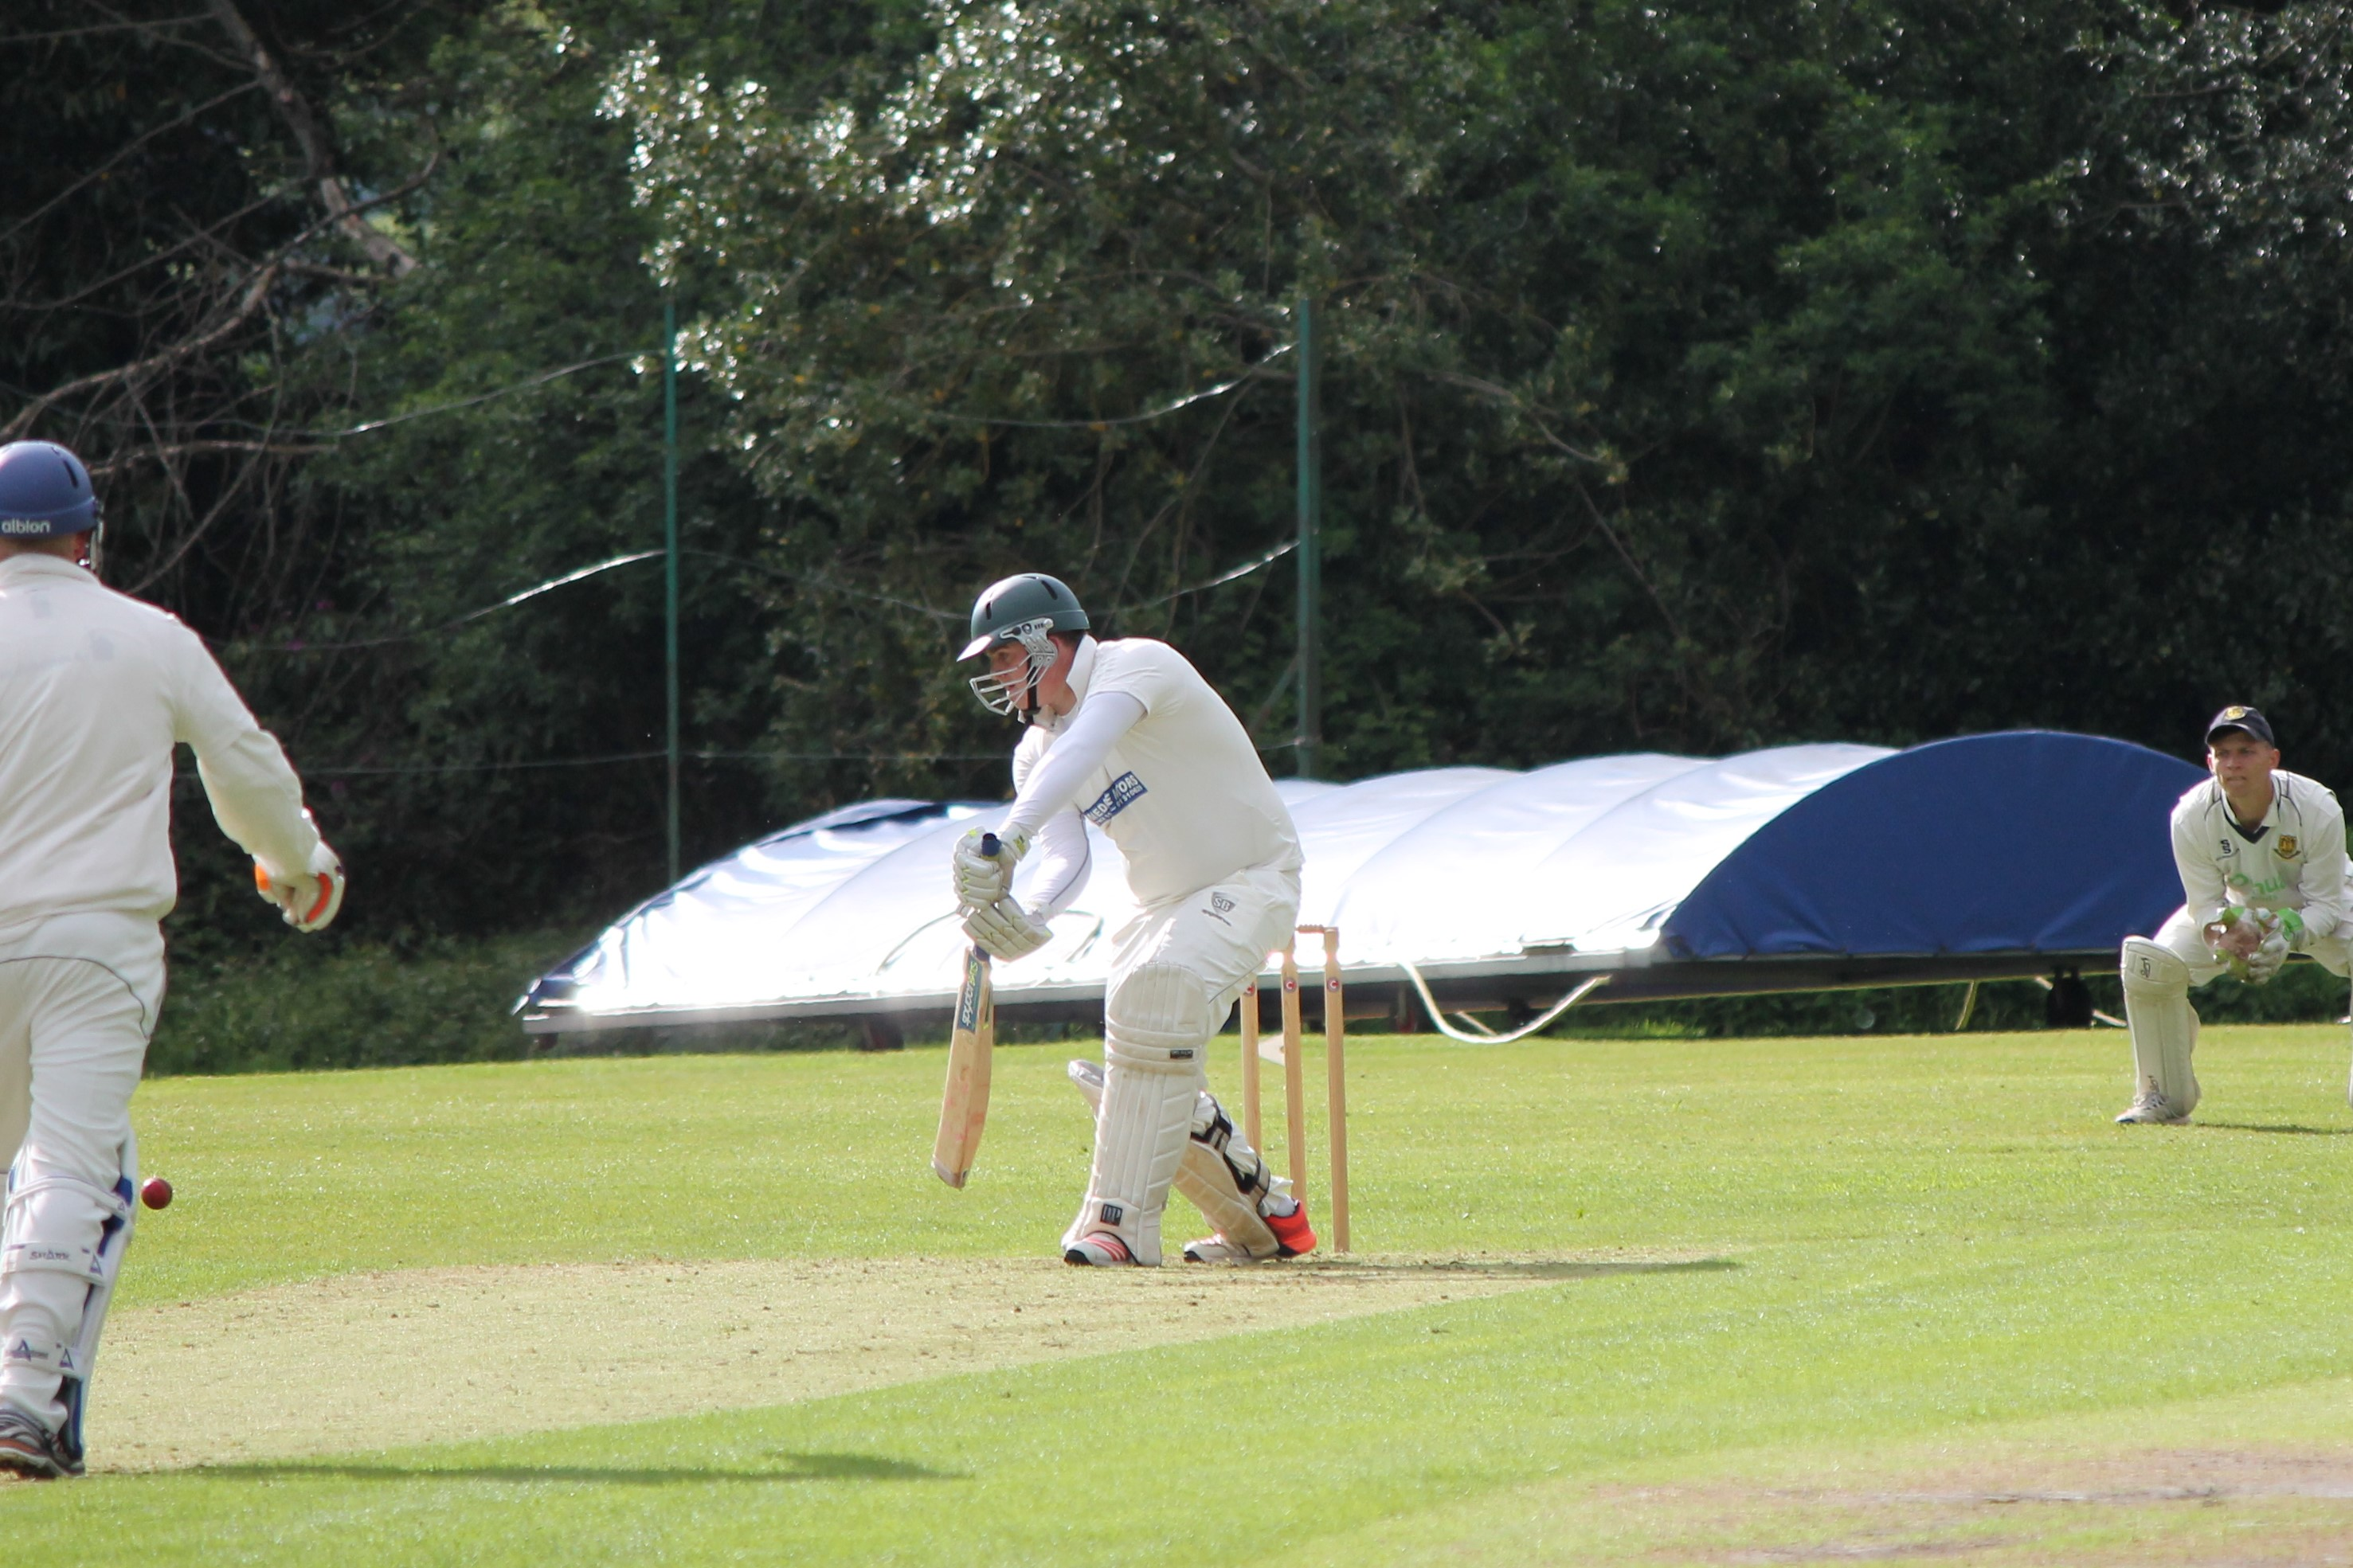 Sam Waterhouse on his way to a not out against Leek.